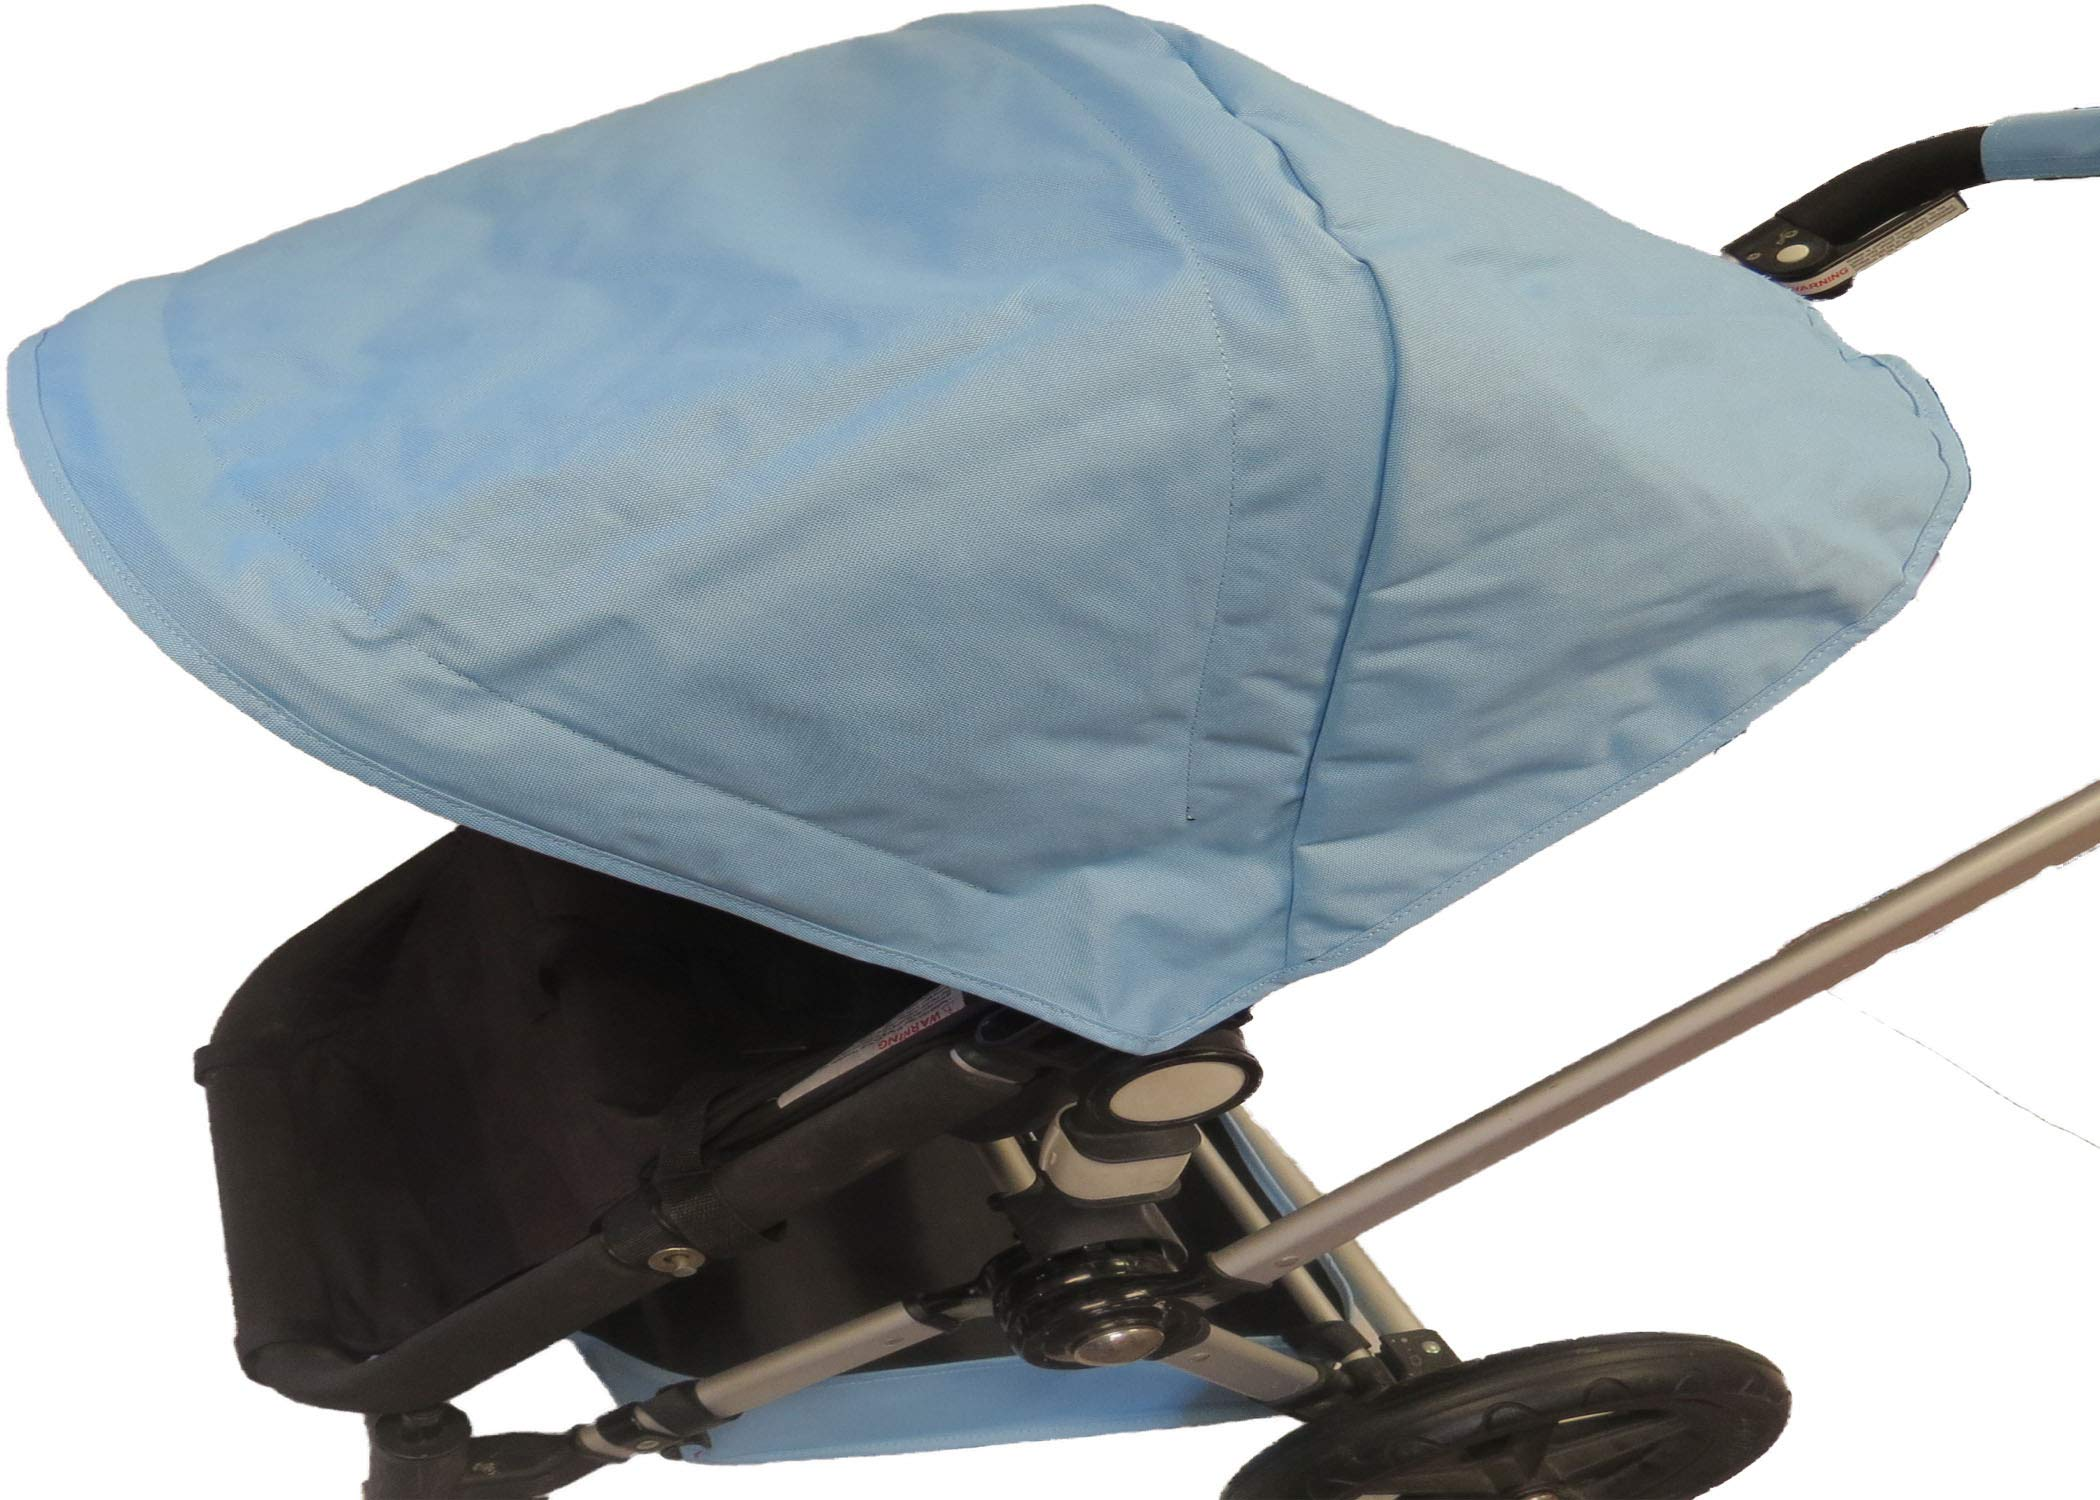 Light Blue Sun Shade Canopy with Wires and Under Seat Storage Basket Plus Free Handle Bar Covers for Bugaboo Cameleon 1, 2, 3, Frog Baby Child Strollers